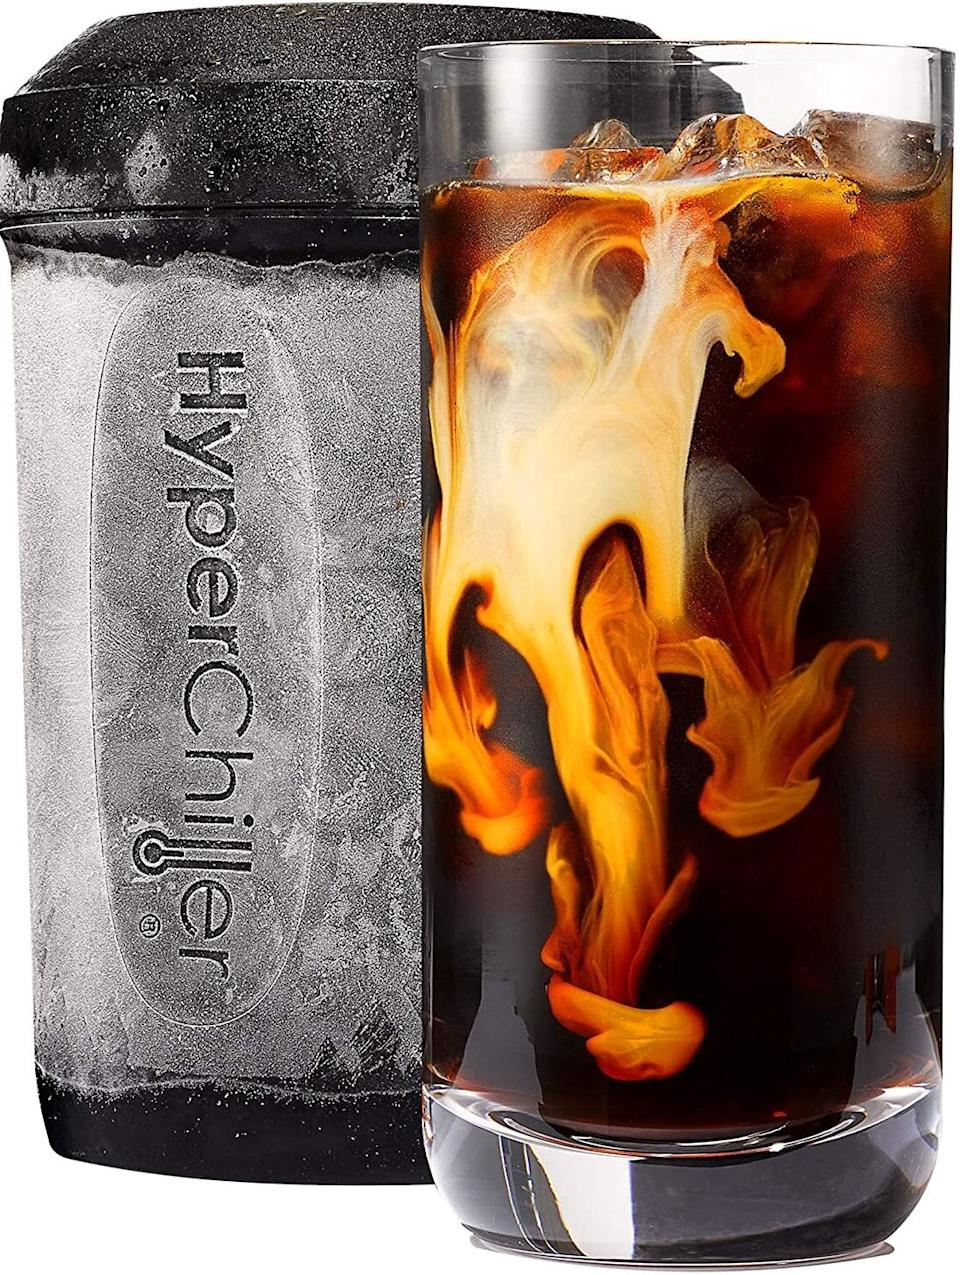 """A must-have if you prefer to drink iced coffee all year. Yes, that includes when it's 25 degrees out.<br /><br /><strong>Promising review:</strong>""""For those not fully familiar with how it works, what it's accomplishing is trying to surround your liquid with as much ice-behind-metal as possible. So, it has a center chamber of ice behind the metal, then an outer chamber of ice.<strong>The inner chamber fits inside the outer with about a cup's worth of space that's between the inner and outer chamber. This exposes your liquid to the greatest surface area of super-cold metal that they can, and since your liquid is only touching metal, and not the ice itself, it doesn't matter the temperature of the liquid poured in.</strong>You can pour in boiling water and while it may end up melting a bunch of the ice behind the metal, none of that water will mix with your drink. So, whether you're chilling a wine, dropping hot coffee to cool it off, or just wanting to rapidly drop the temp of that fresh lemonade you made without making it watery, this will get that done."""" —<a href=""""https://www.amazon.com/dp/B07FJ6J24R?tag=huffpost-bfsyndication-20&ascsubtag=5817703%2C38%2C43%2Cd%2C0%2C0%2C0%2C962%3A1%3B901%3A2%3B900%3A2%3B974%3A3%3B975%3A2%3B982%3A2%2C16401870%2C0"""" target=""""_blank"""" rel=""""noopener noreferrer"""">P. Eriksen</a><br /><br /><strong>Get it from Amazon for <a href=""""https://www.amazon.com/dp/B07FJ6J24R?tag=huffpost-bfsyndication-20&ascsubtag=5817703%2C38%2C43%2Cd%2C0%2C0%2C0%2C962%3A1%3B901%3A2%3B900%3A2%3B974%3A3%3B975%3A2%3B982%3A2%2C16401870%2C0"""" target=""""_blank"""" rel=""""noopener noreferrer"""">$24.99</a>.</strong>"""